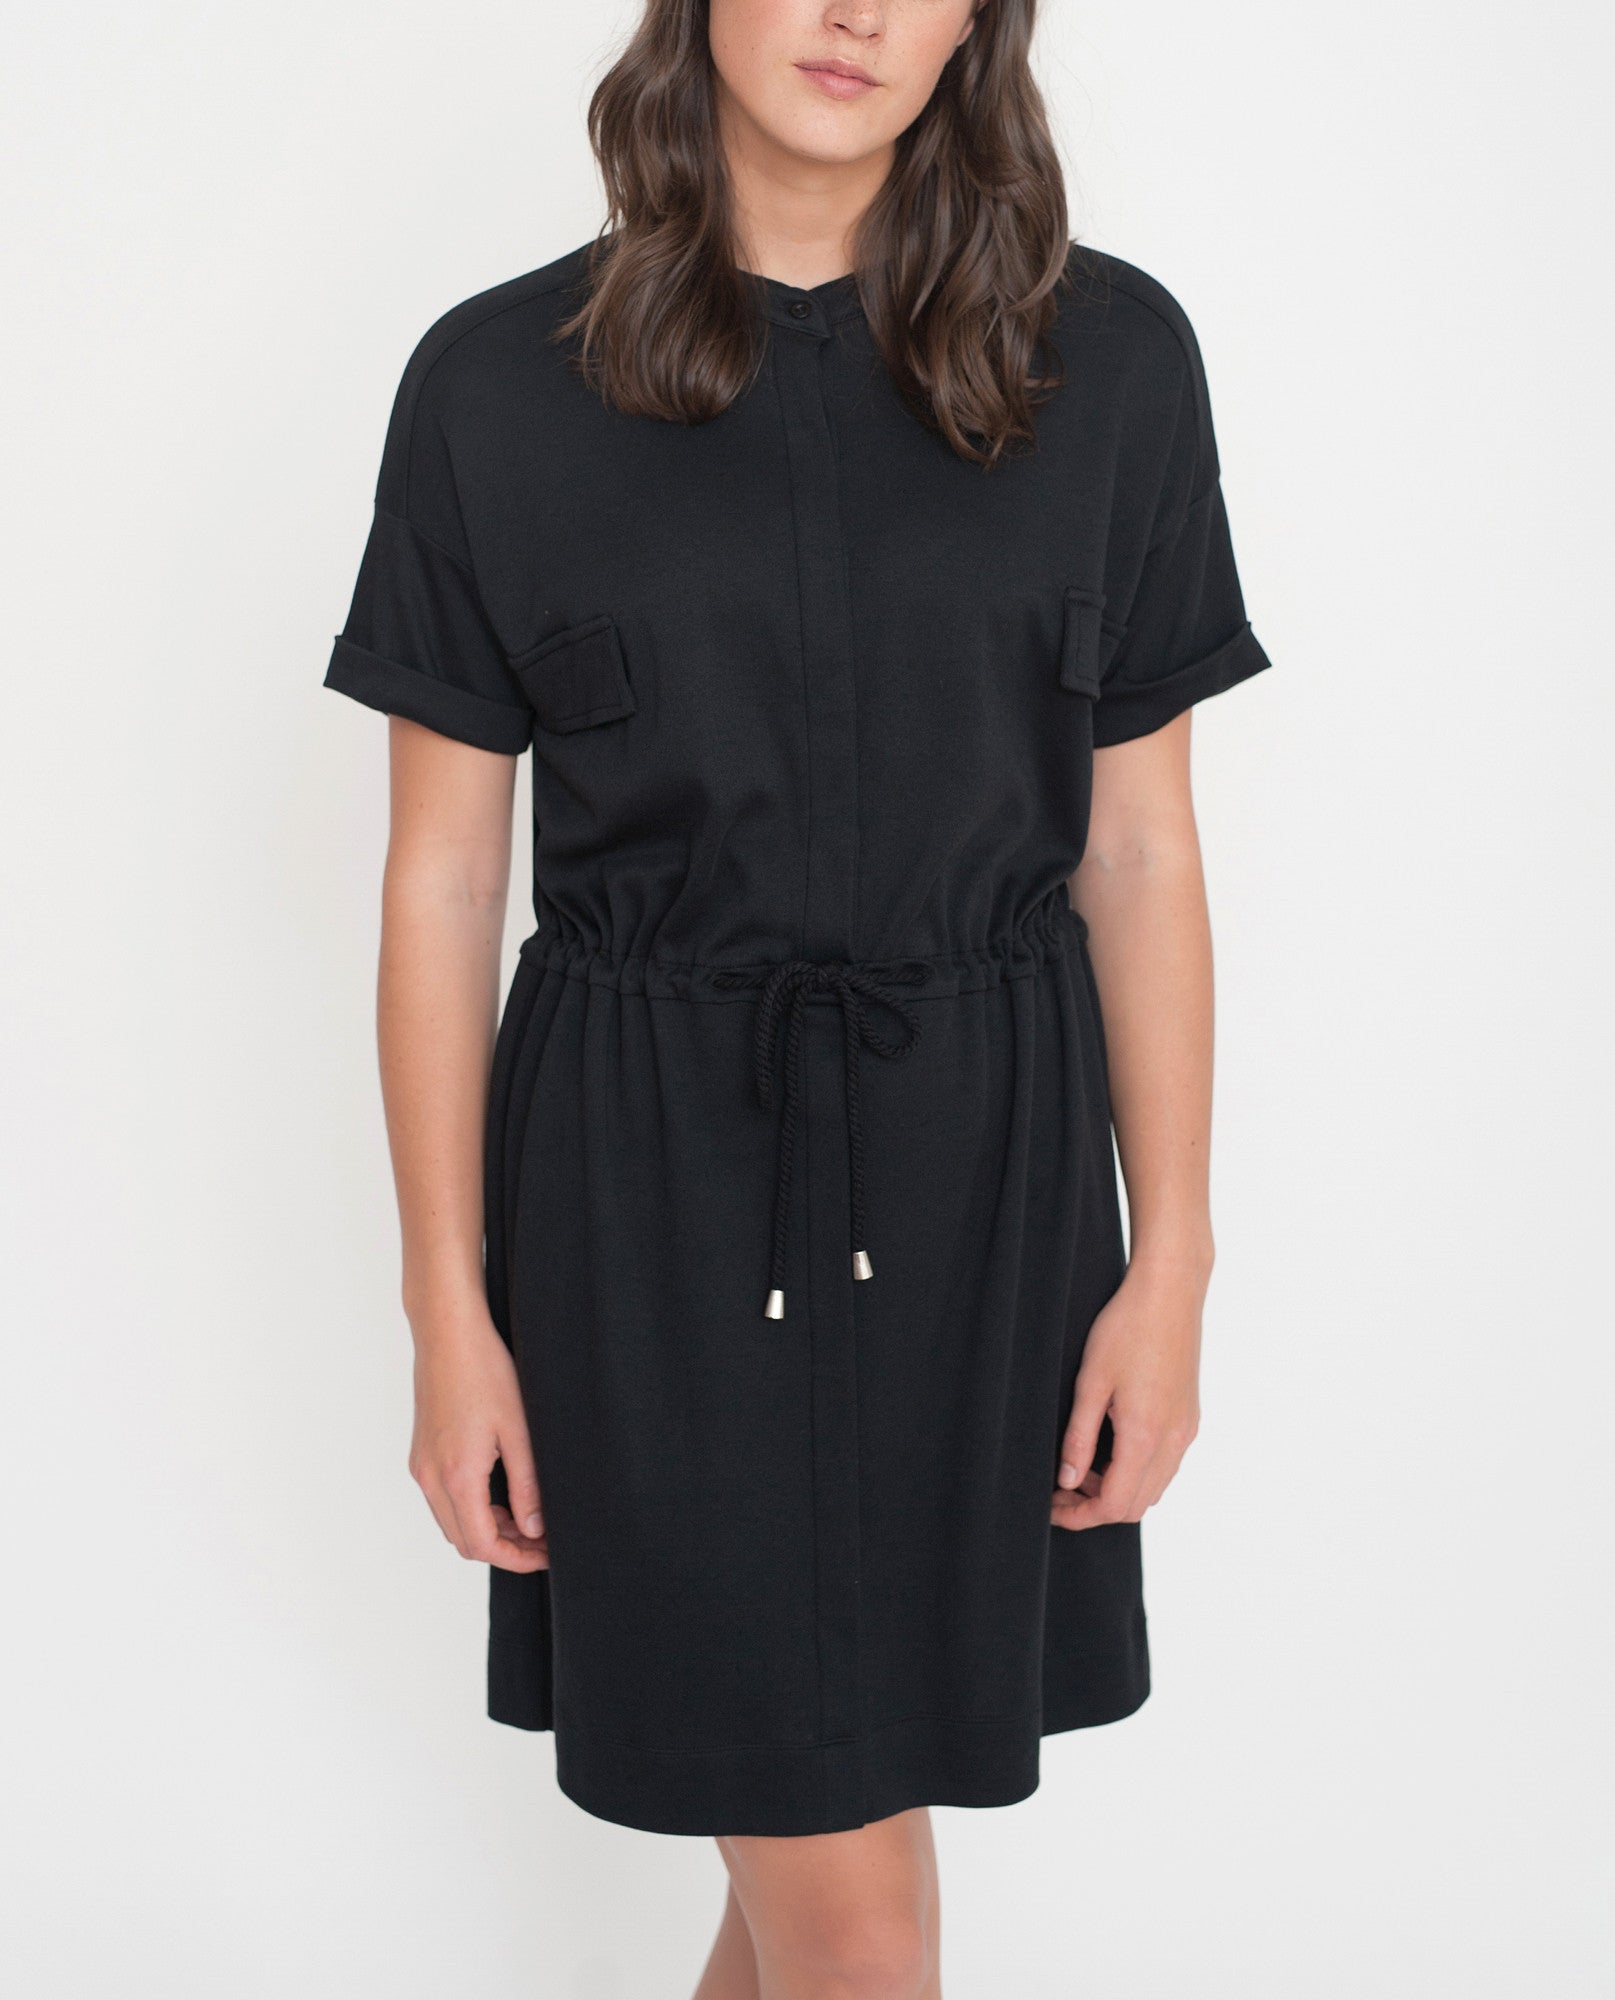 MILA Lyocell And Cotton Shirt Dress In Black from Beaumont Organic